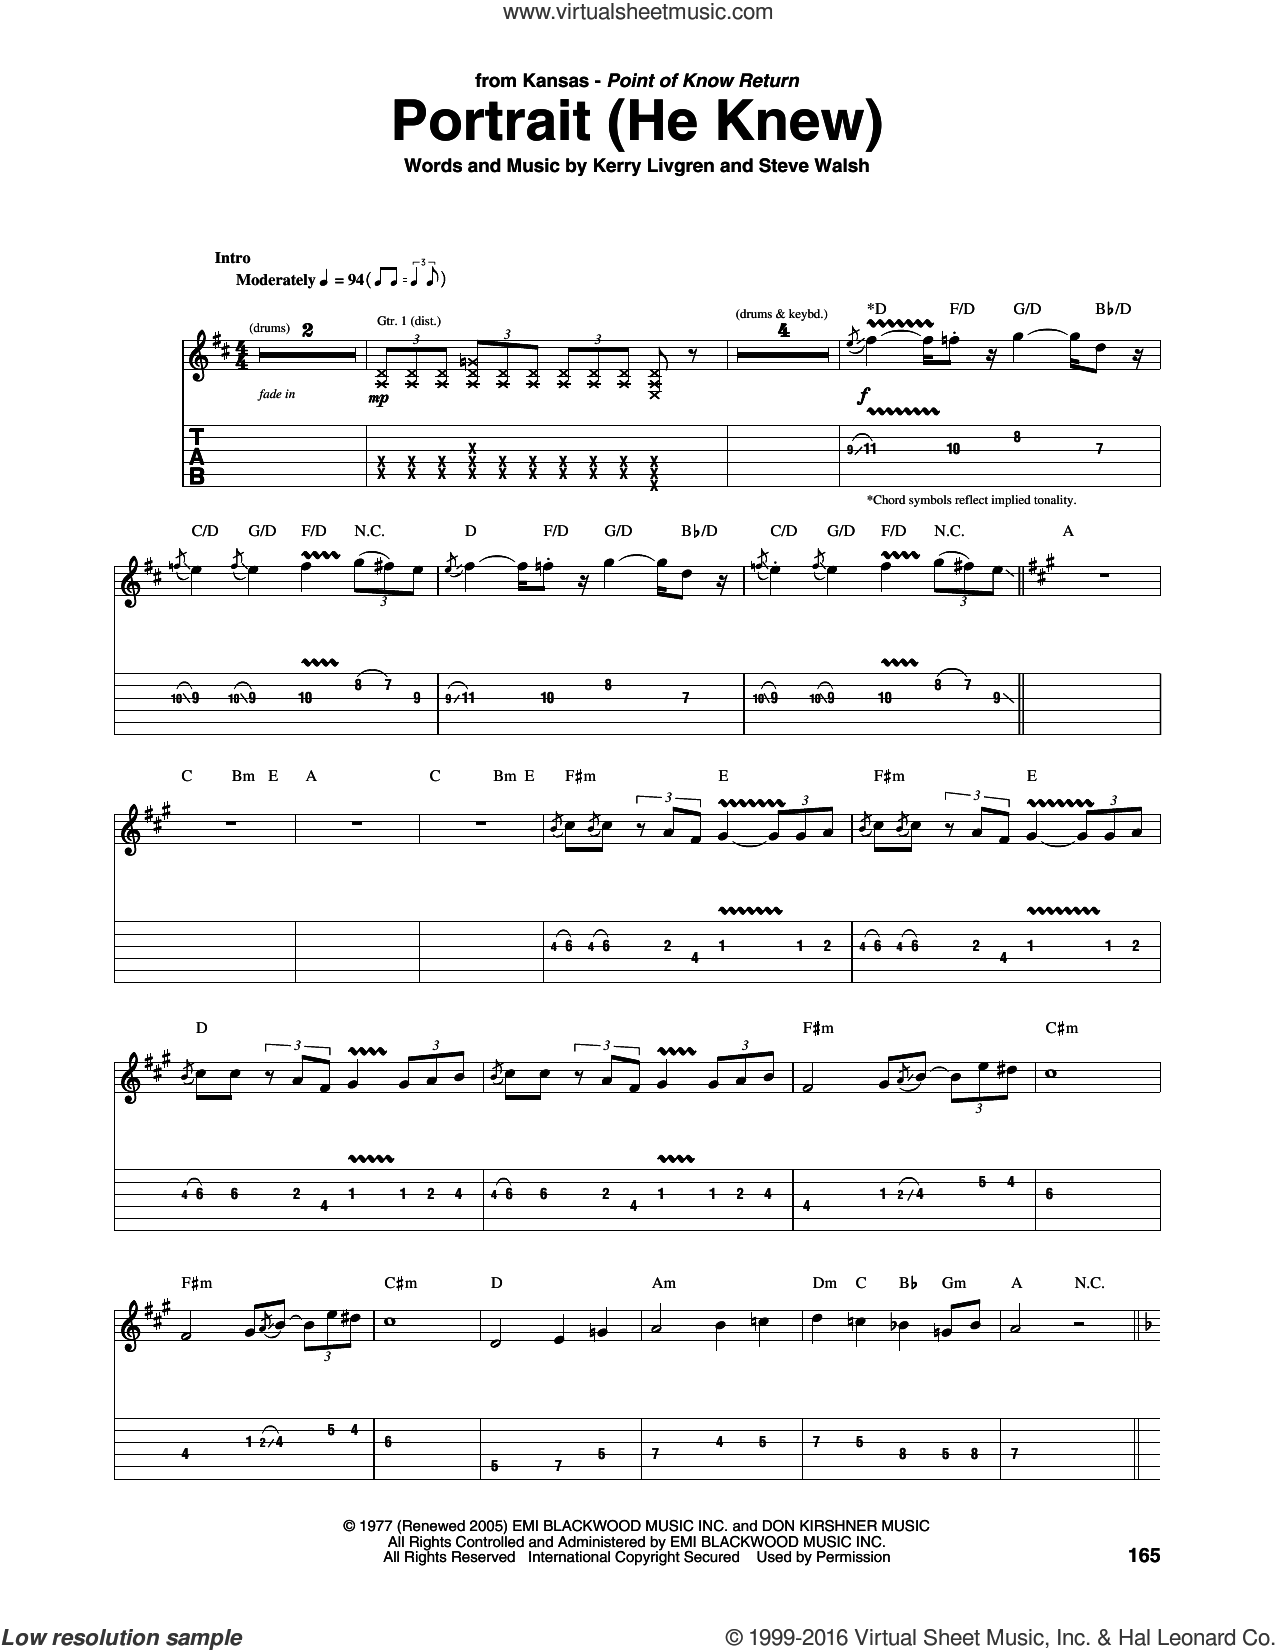 Portrait (He Knew) sheet music for guitar (tablature) by Steve Walsh, Kansas and Kerry Livgren. Score Image Preview.